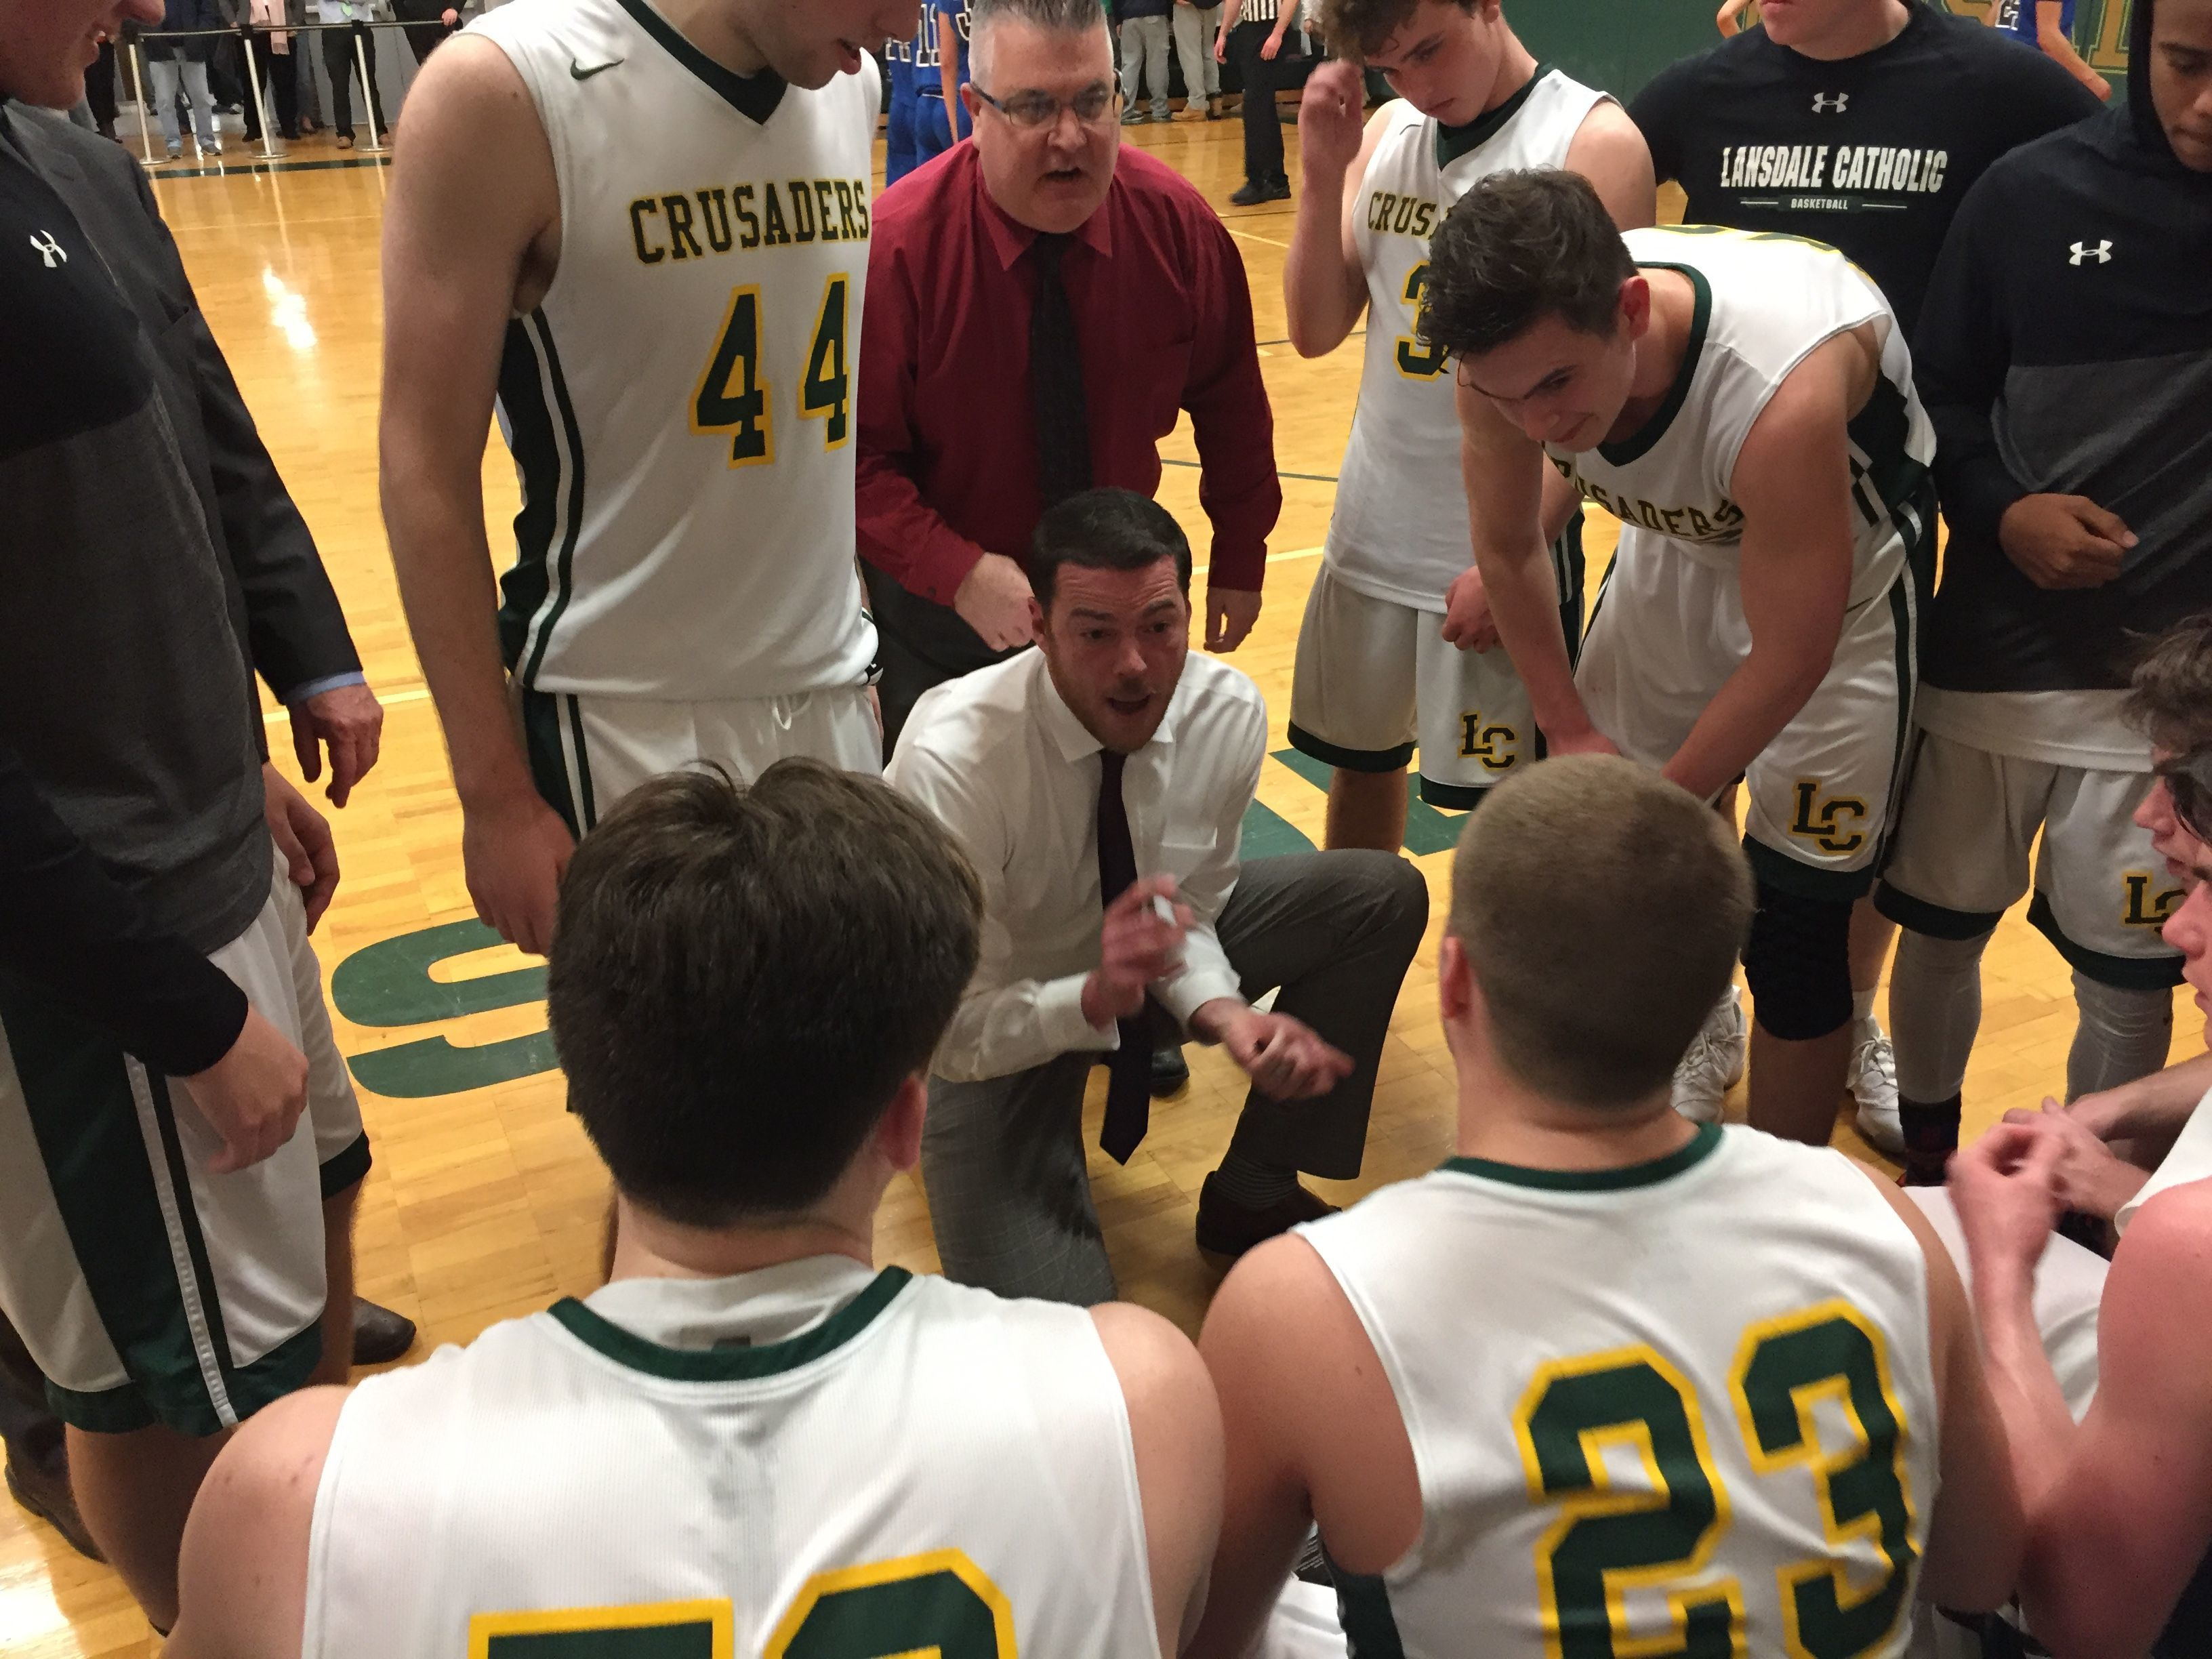 Lansdale Catholic coach Joe Corbett instructs his squad in Monday nights win over Conwell-Egan.